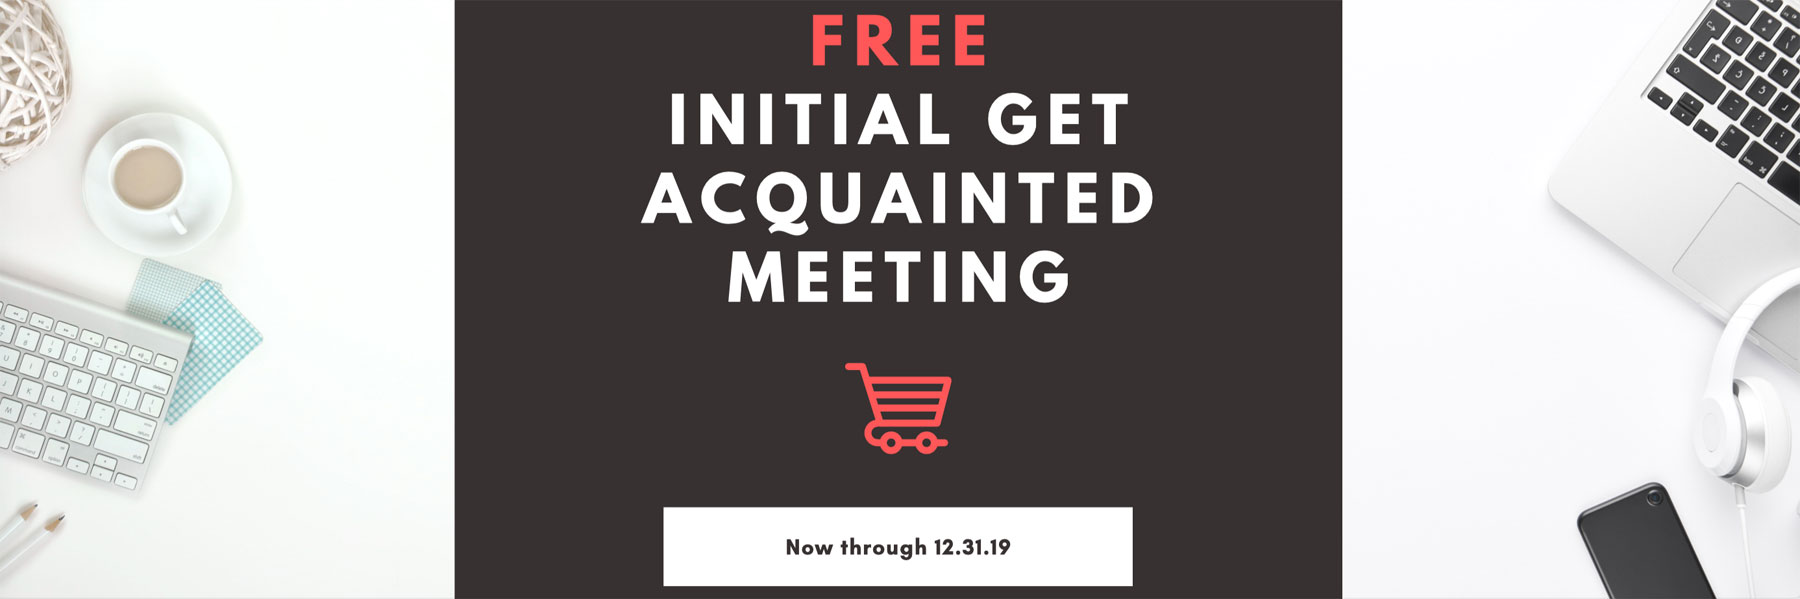 Free initial Get Acquainted Meeting